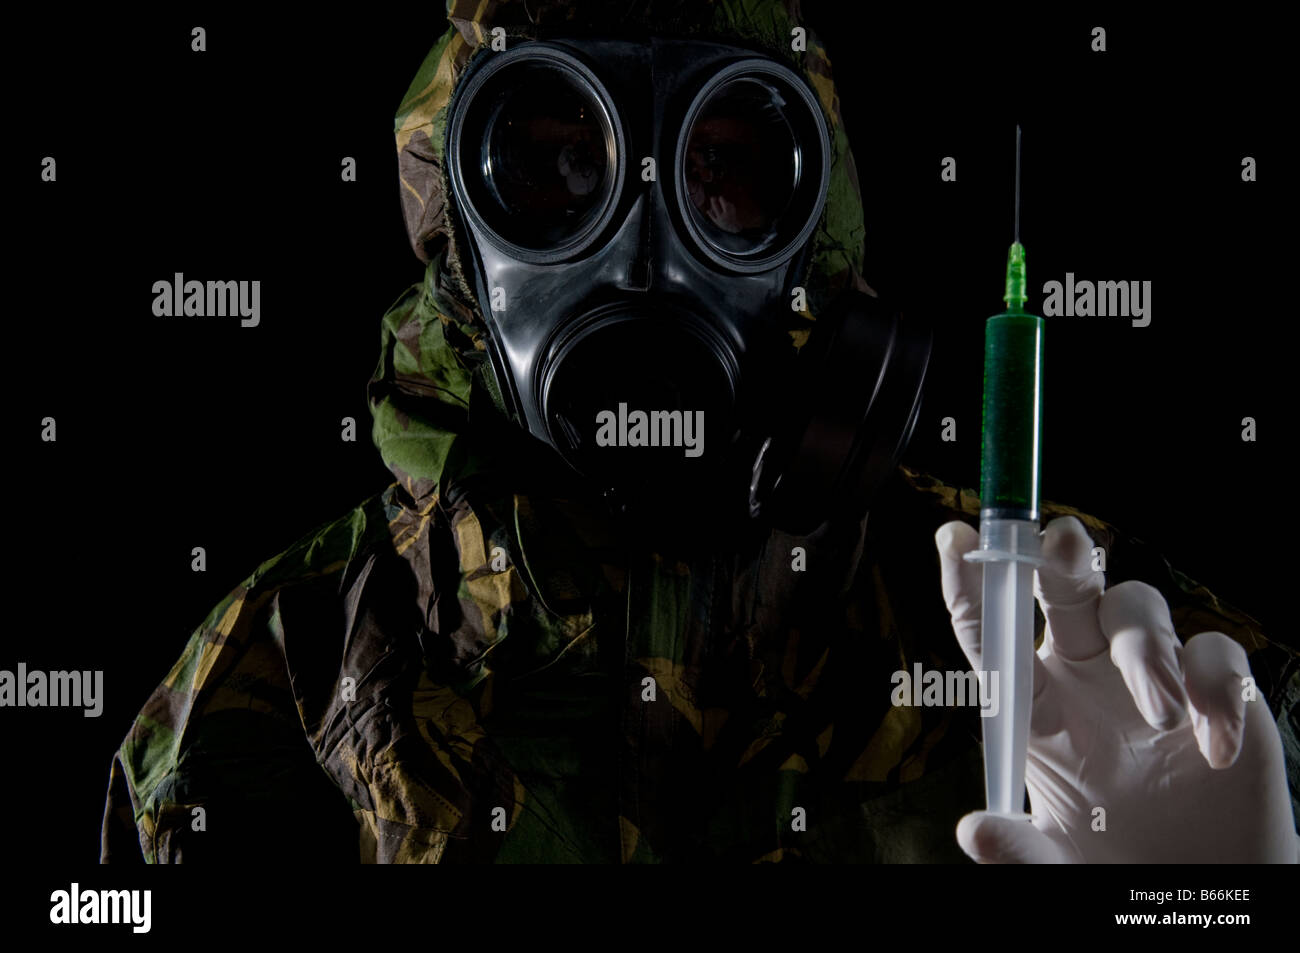 Soldier in respirator and protective suit inspects hypodermic of green liquid Stock Photo